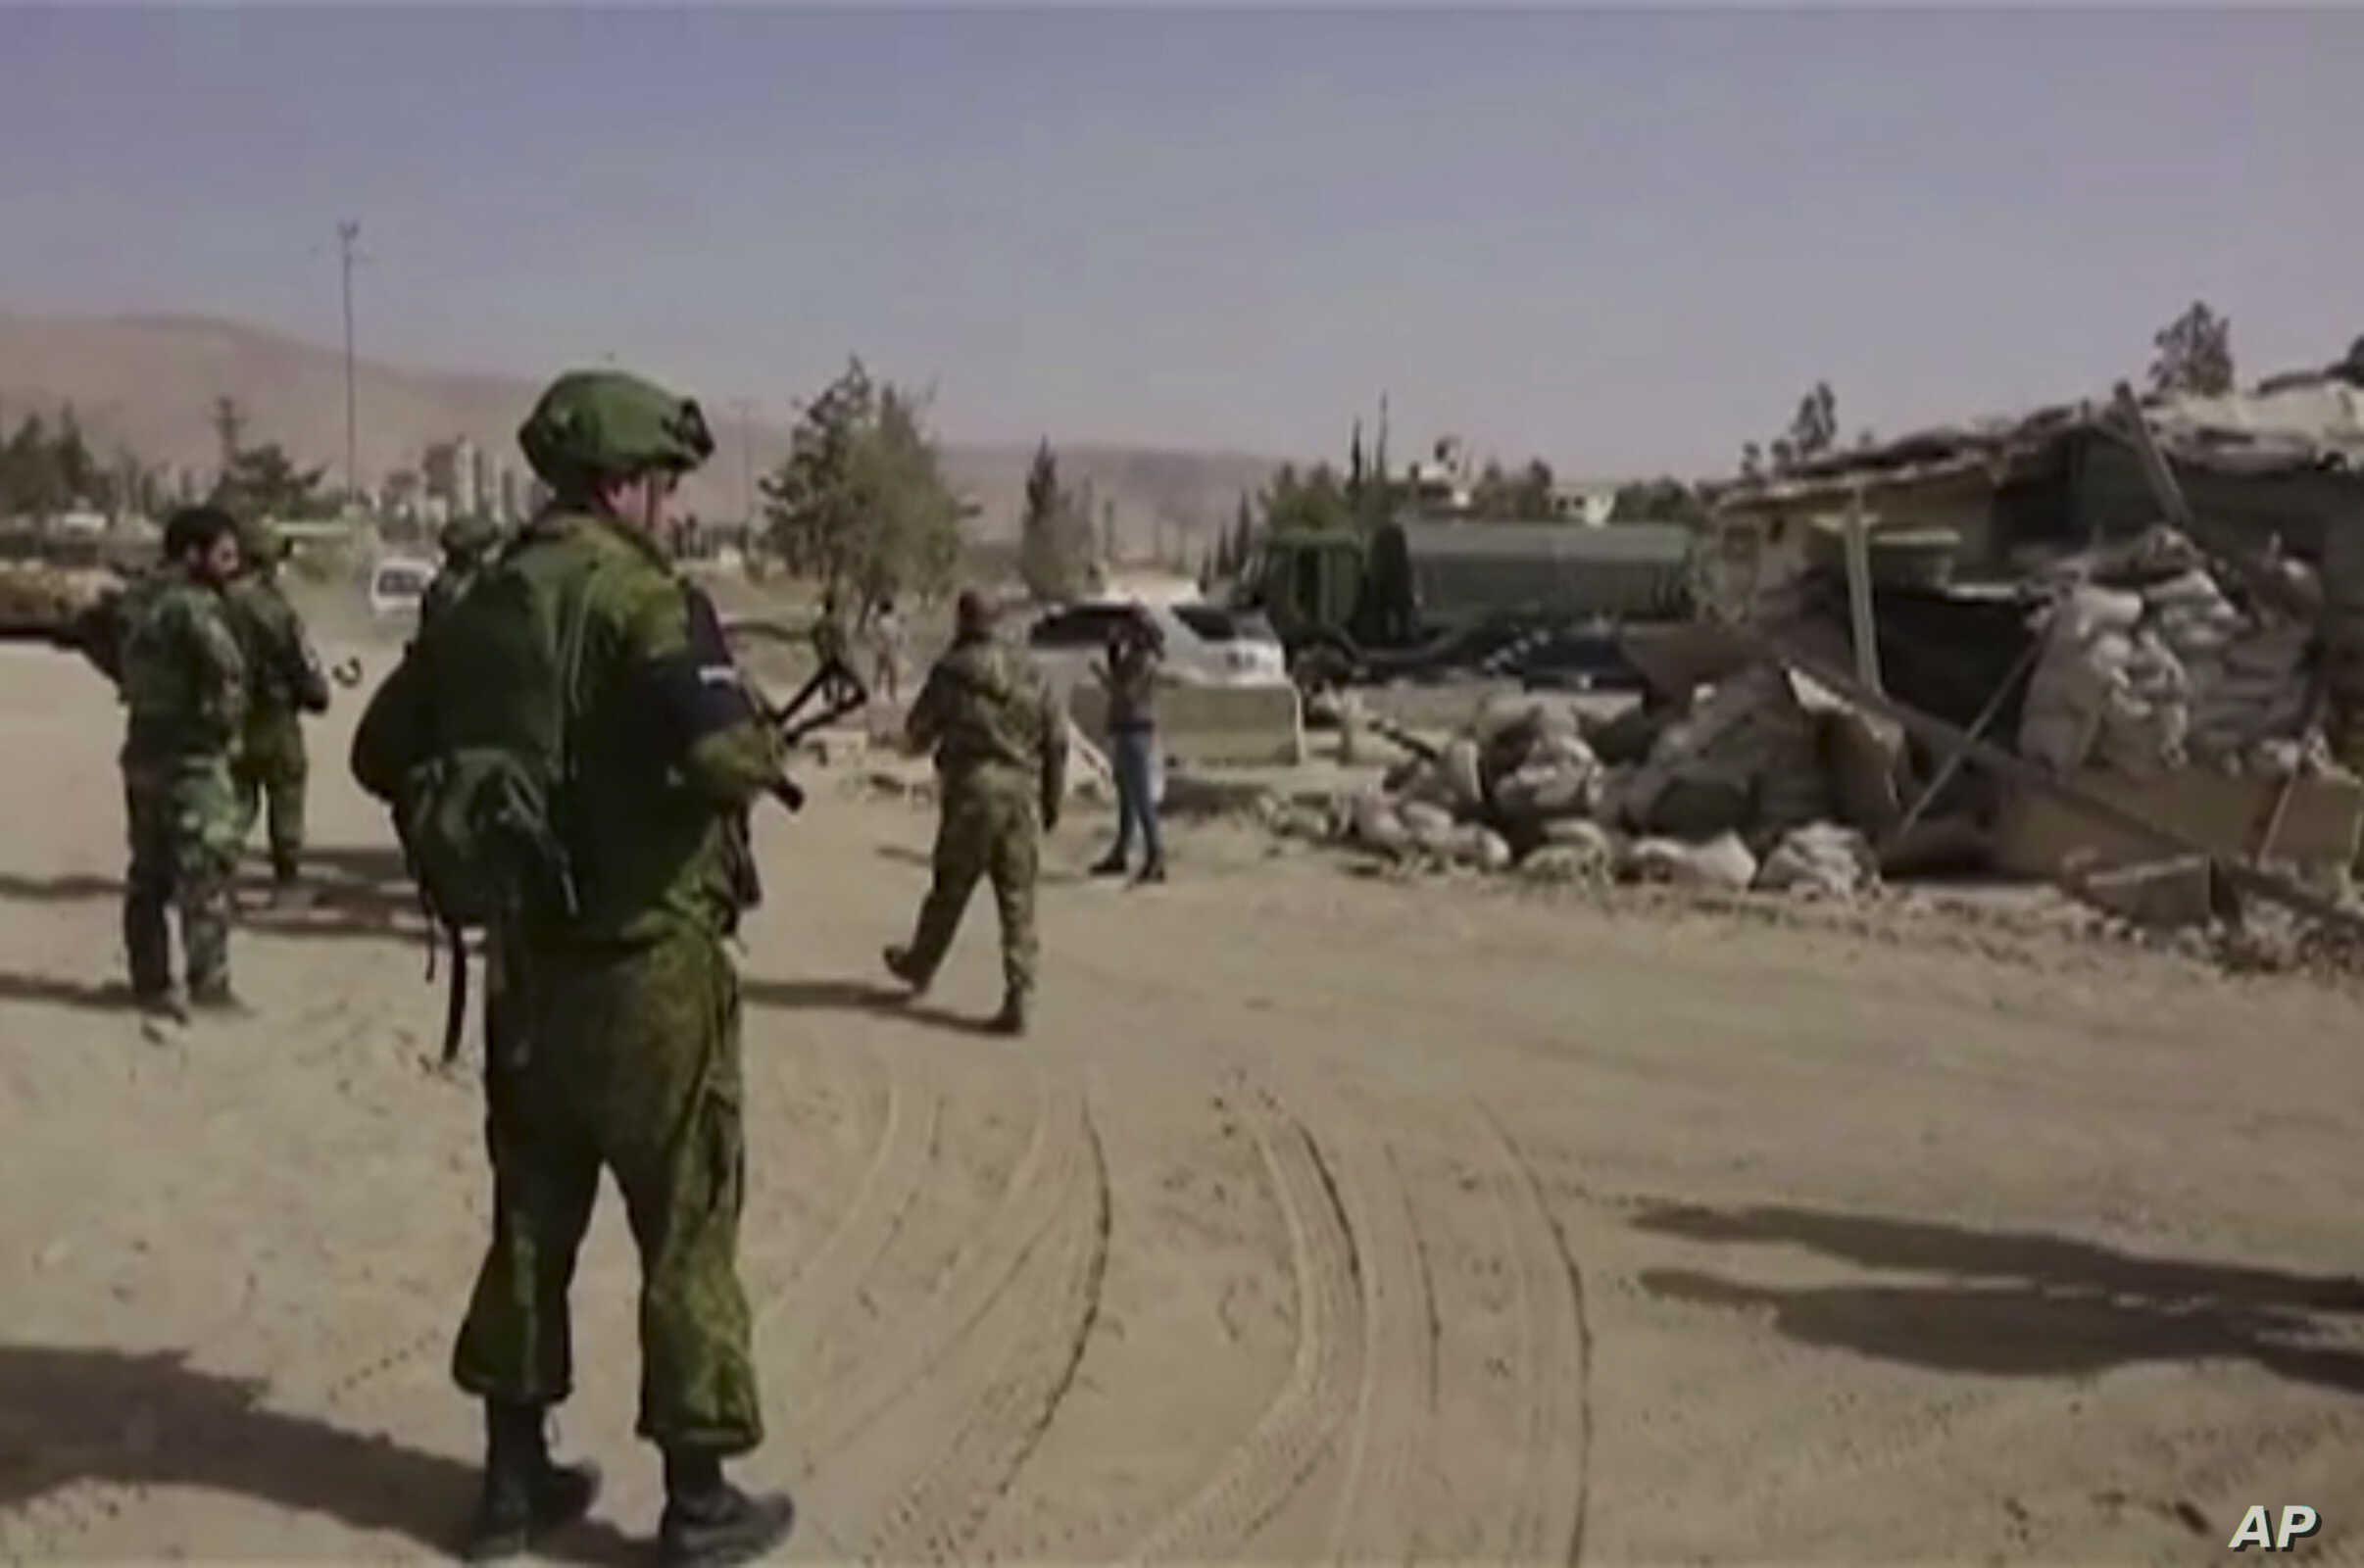 FILE - In this is image from video, Syrian government forces and Russian soldiers oversee the evacuation by buses of rebel fighters and their families, at a checkpoint in eastern Gouta, Syria, March, 22, 2108.